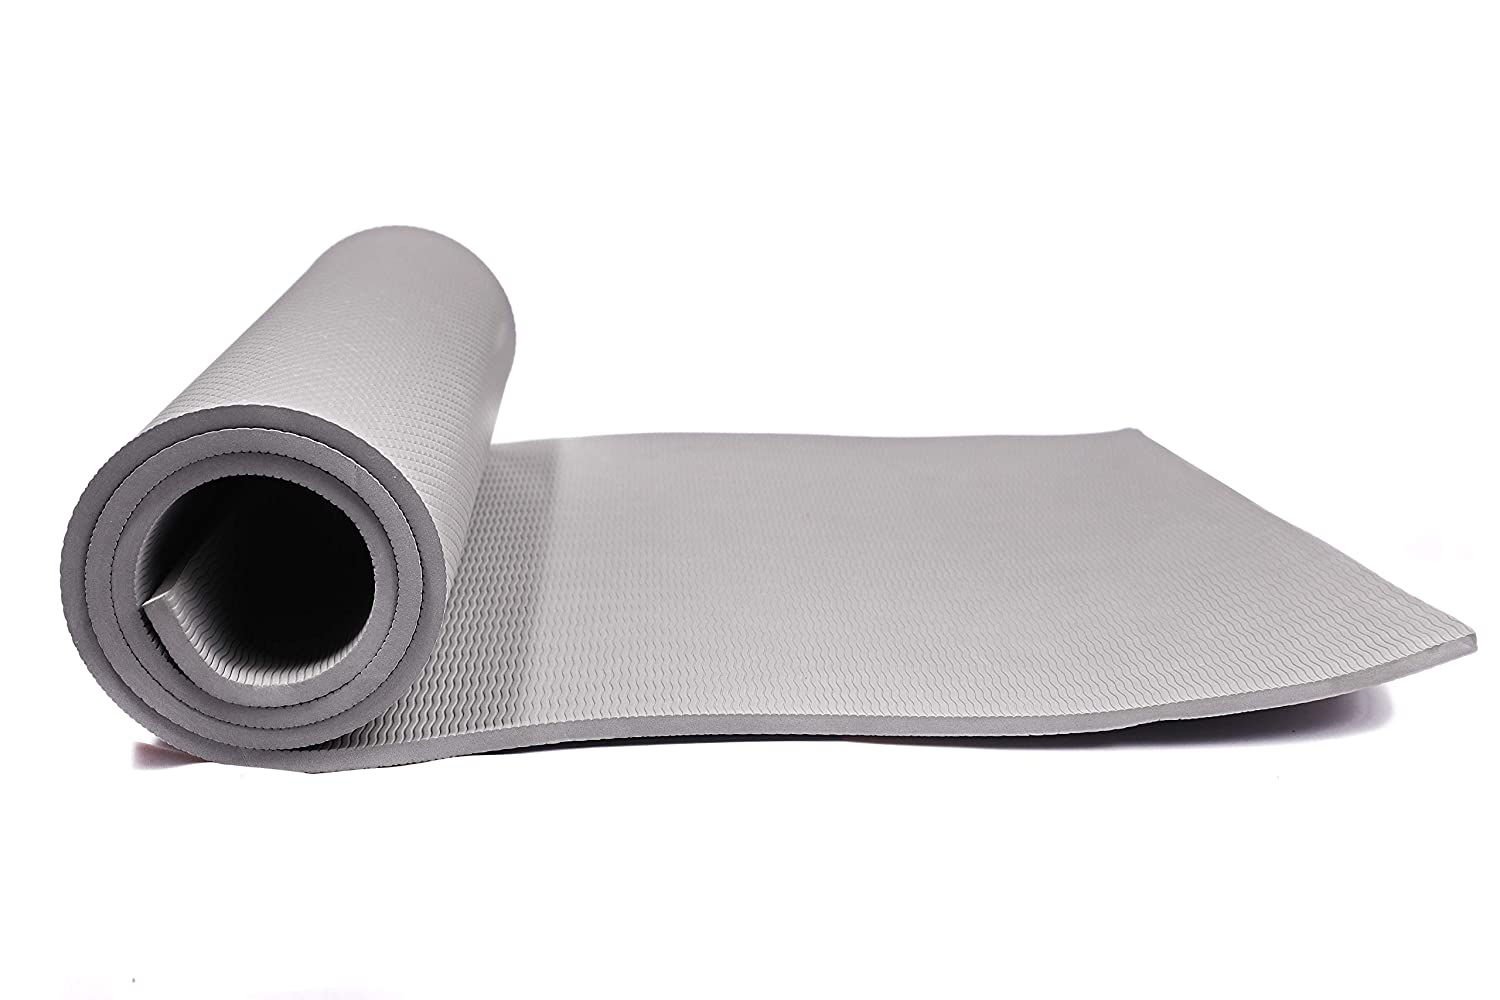 HNESS 10 mm Anti Skid Thick Yoga and Exercise Mat